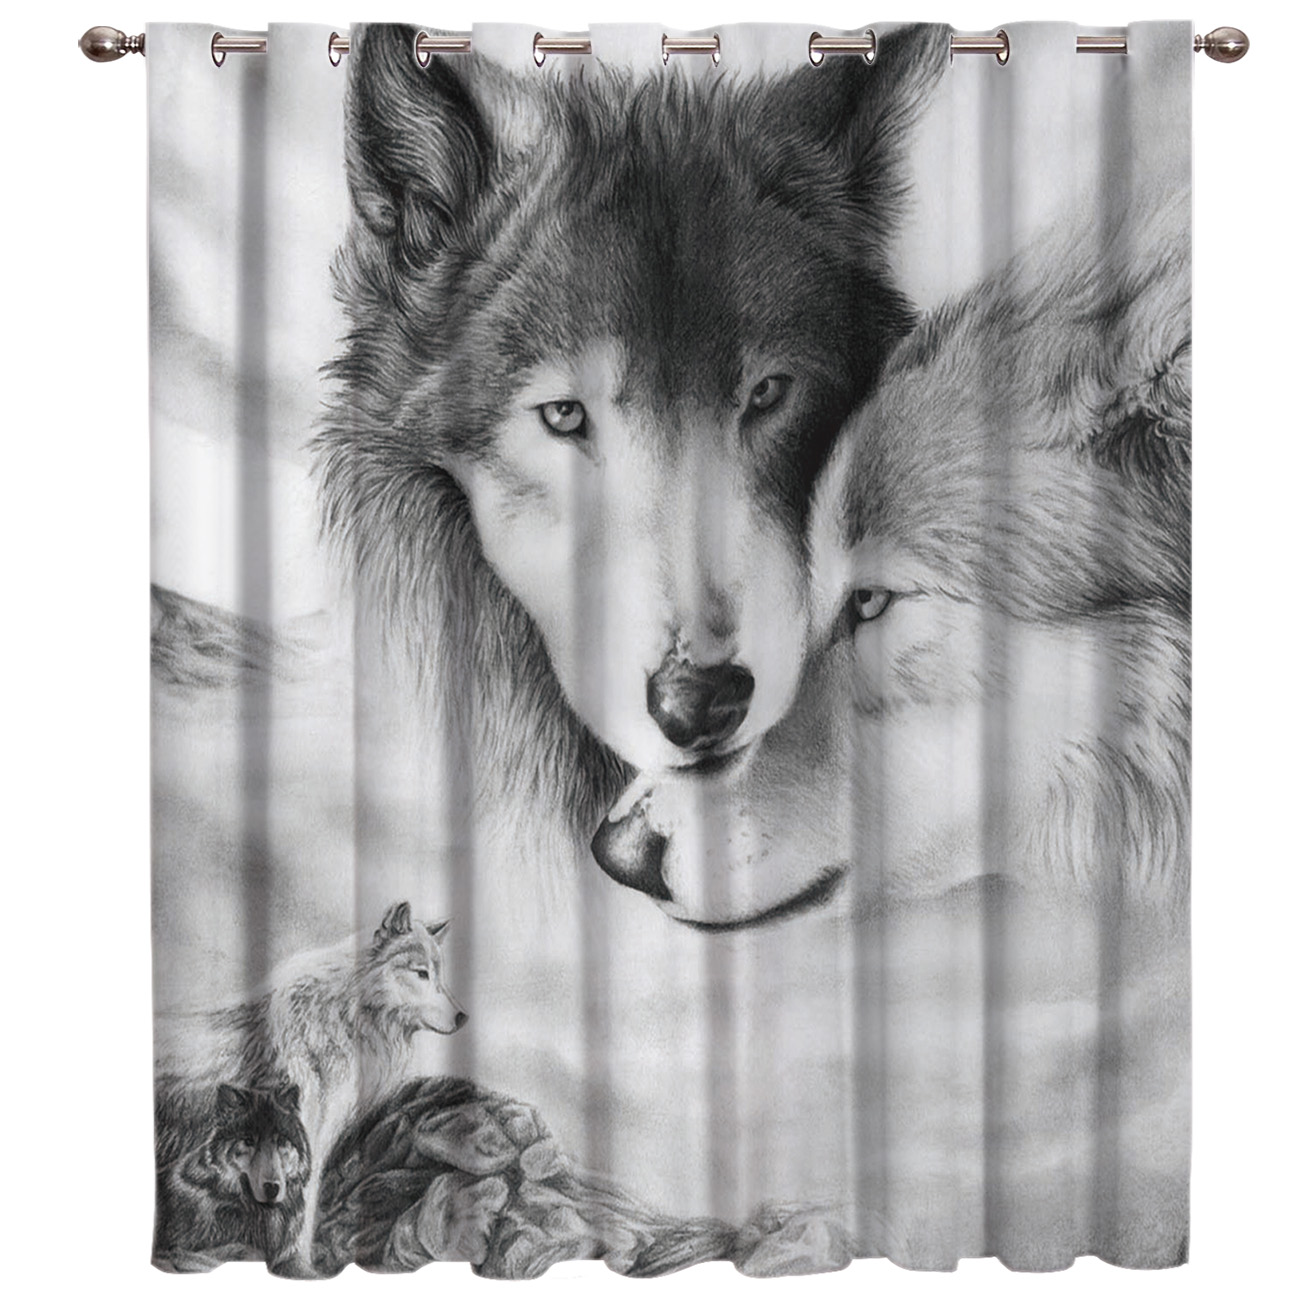 Wolf Love Black And White Window Treatments Curtains Valance Bedroom Decor Kids Window Treatment Hardware Sets Window Treatment